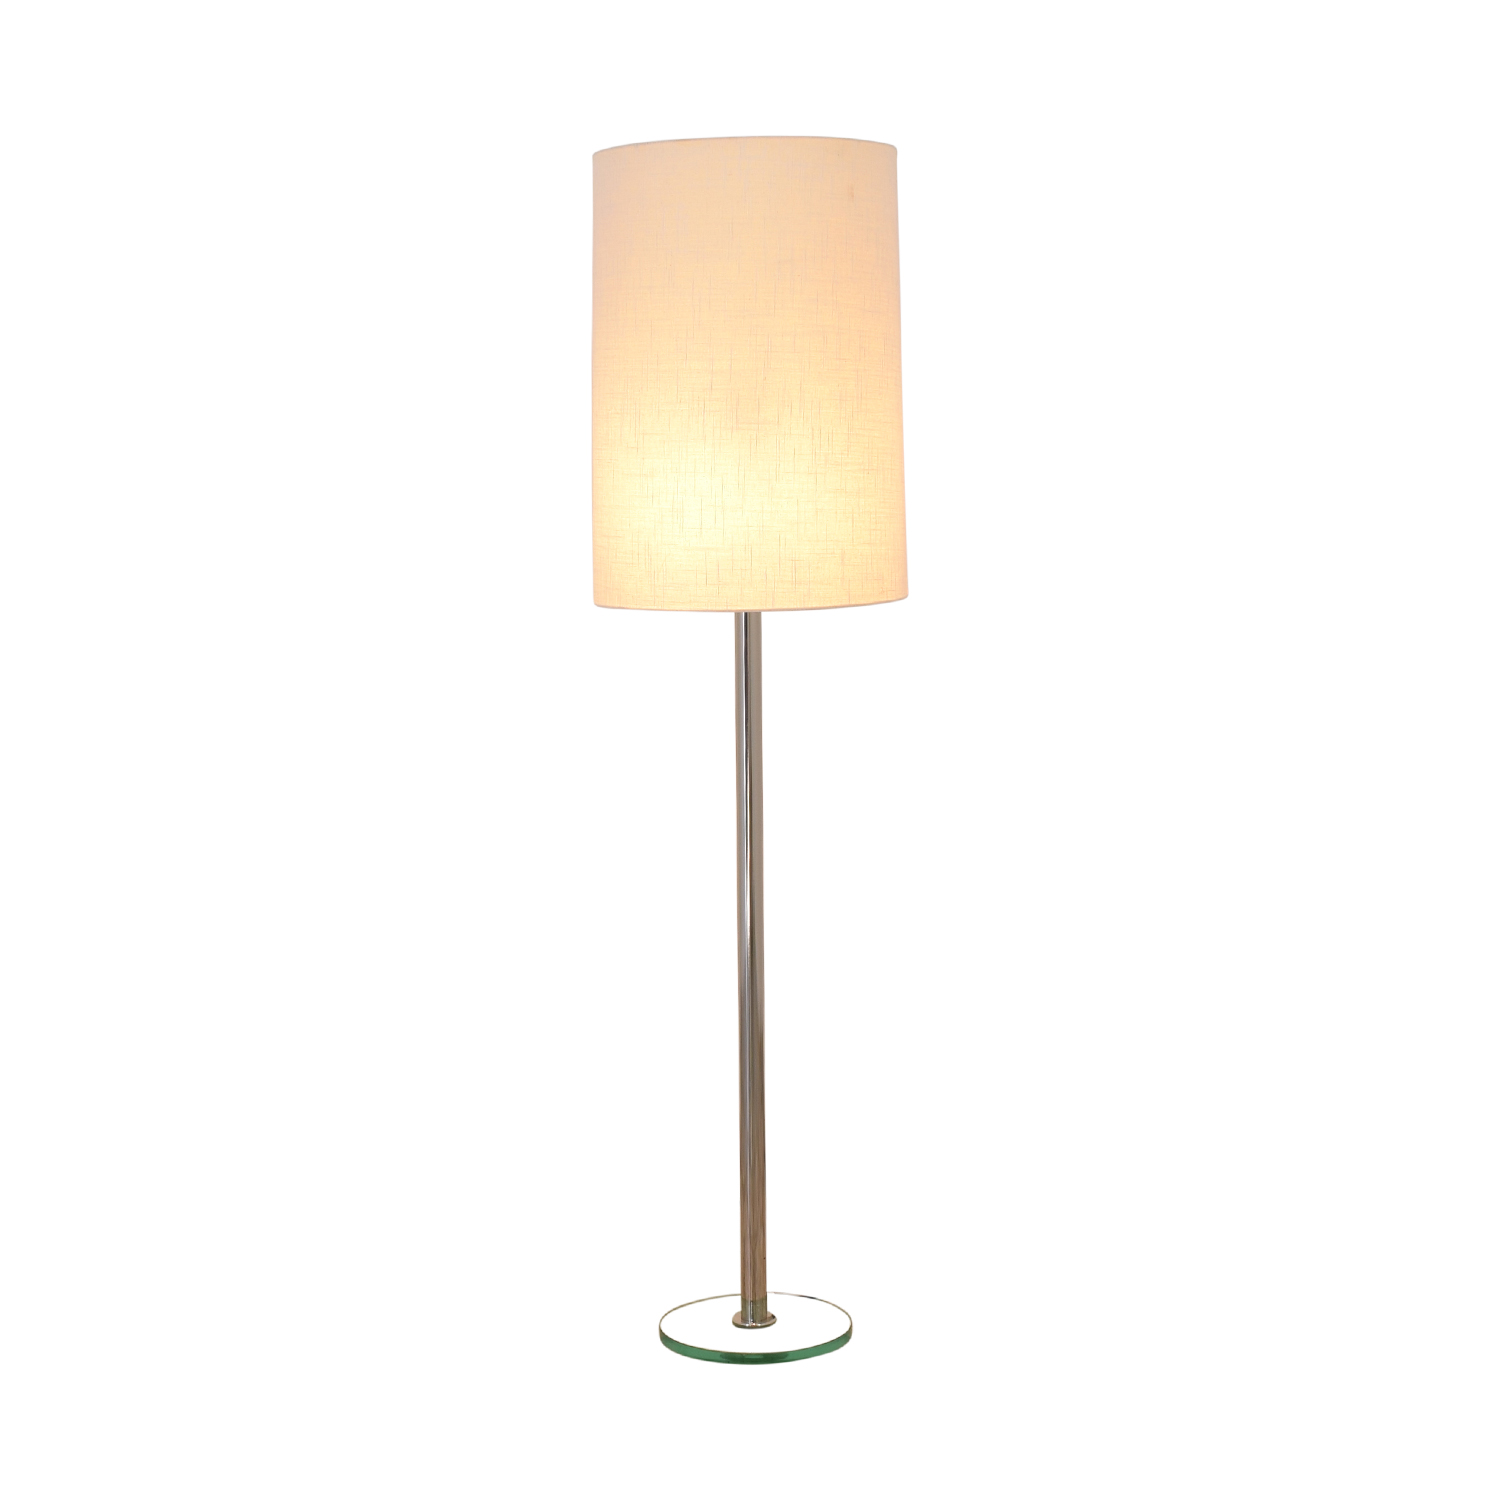 Crate & Barrel Crate & Barrel Claire Floor Lamp